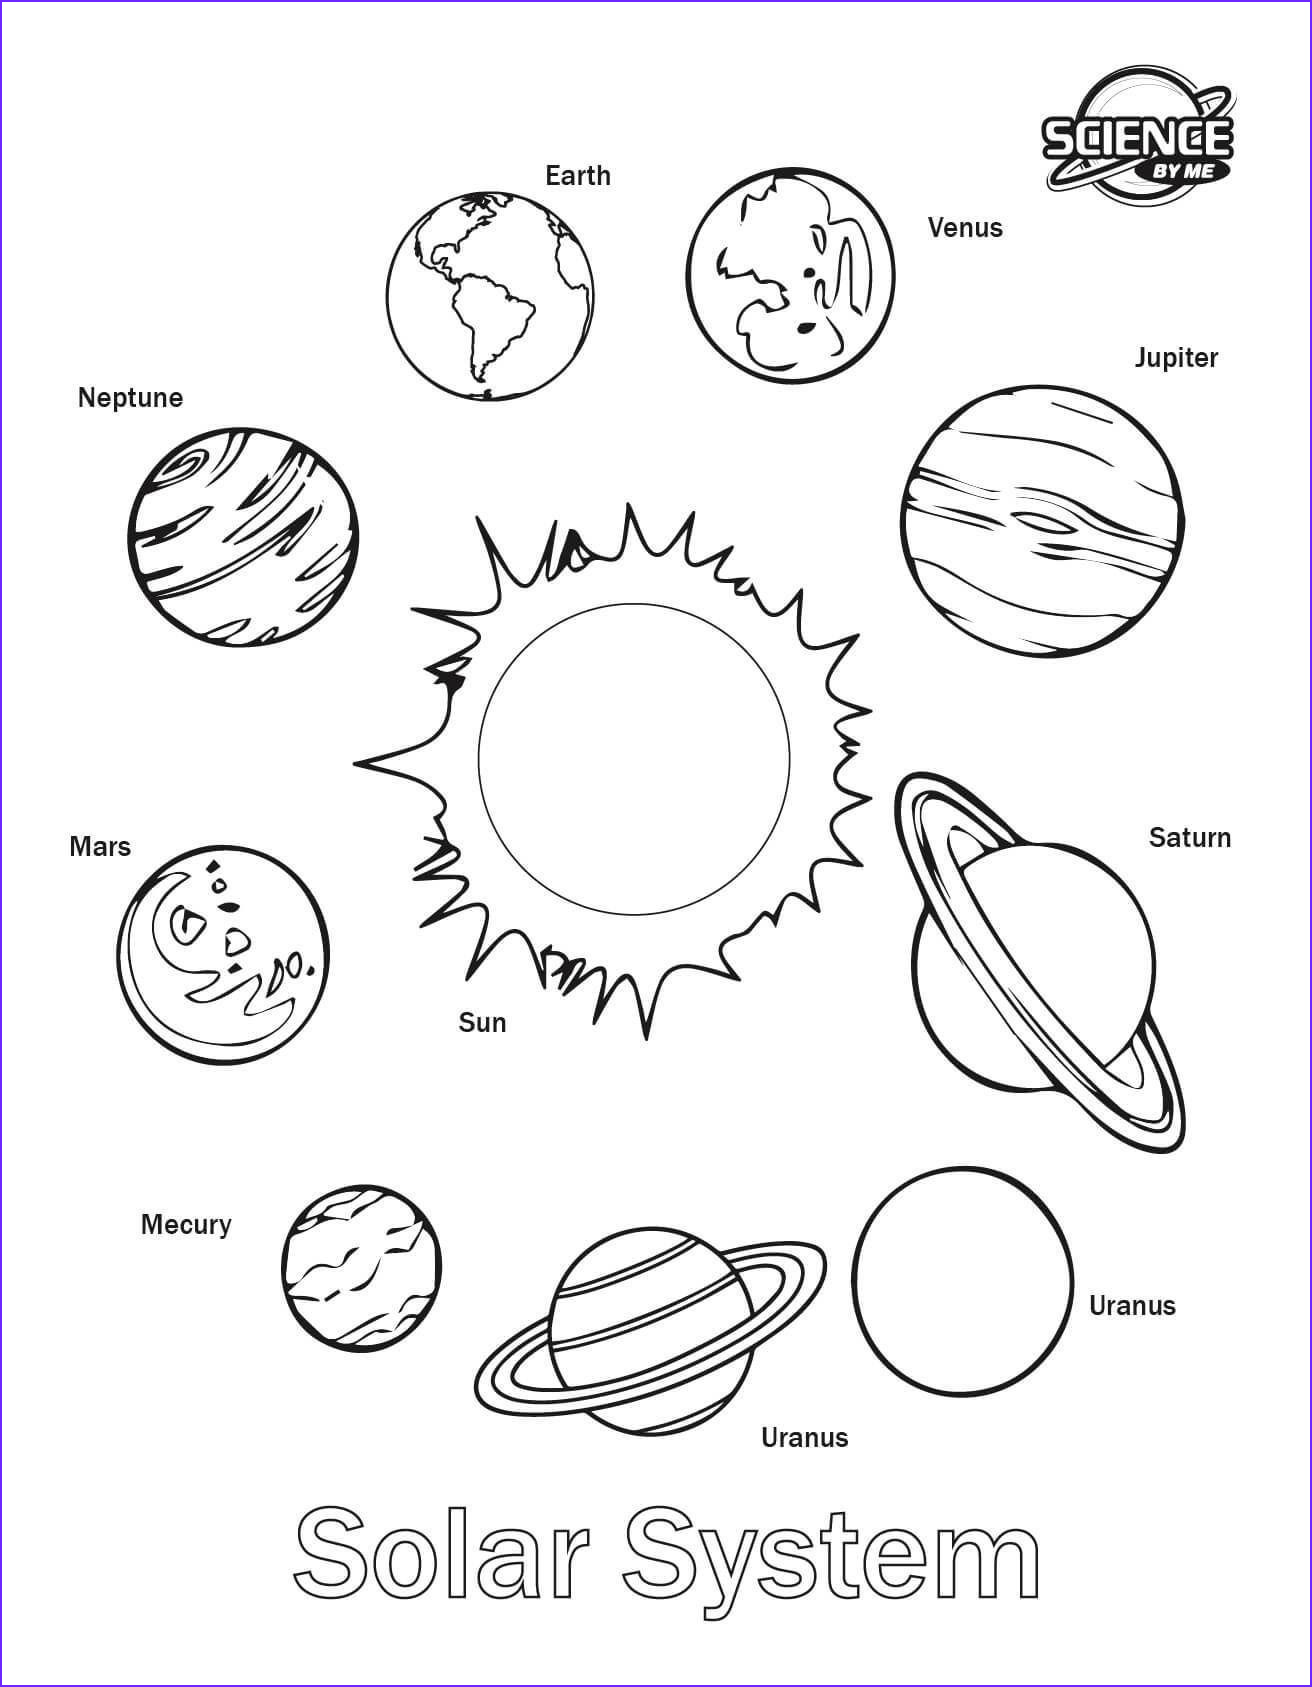 Solar System Coloring Page Cool Gallery solar System Coloring Pages Coloring Page